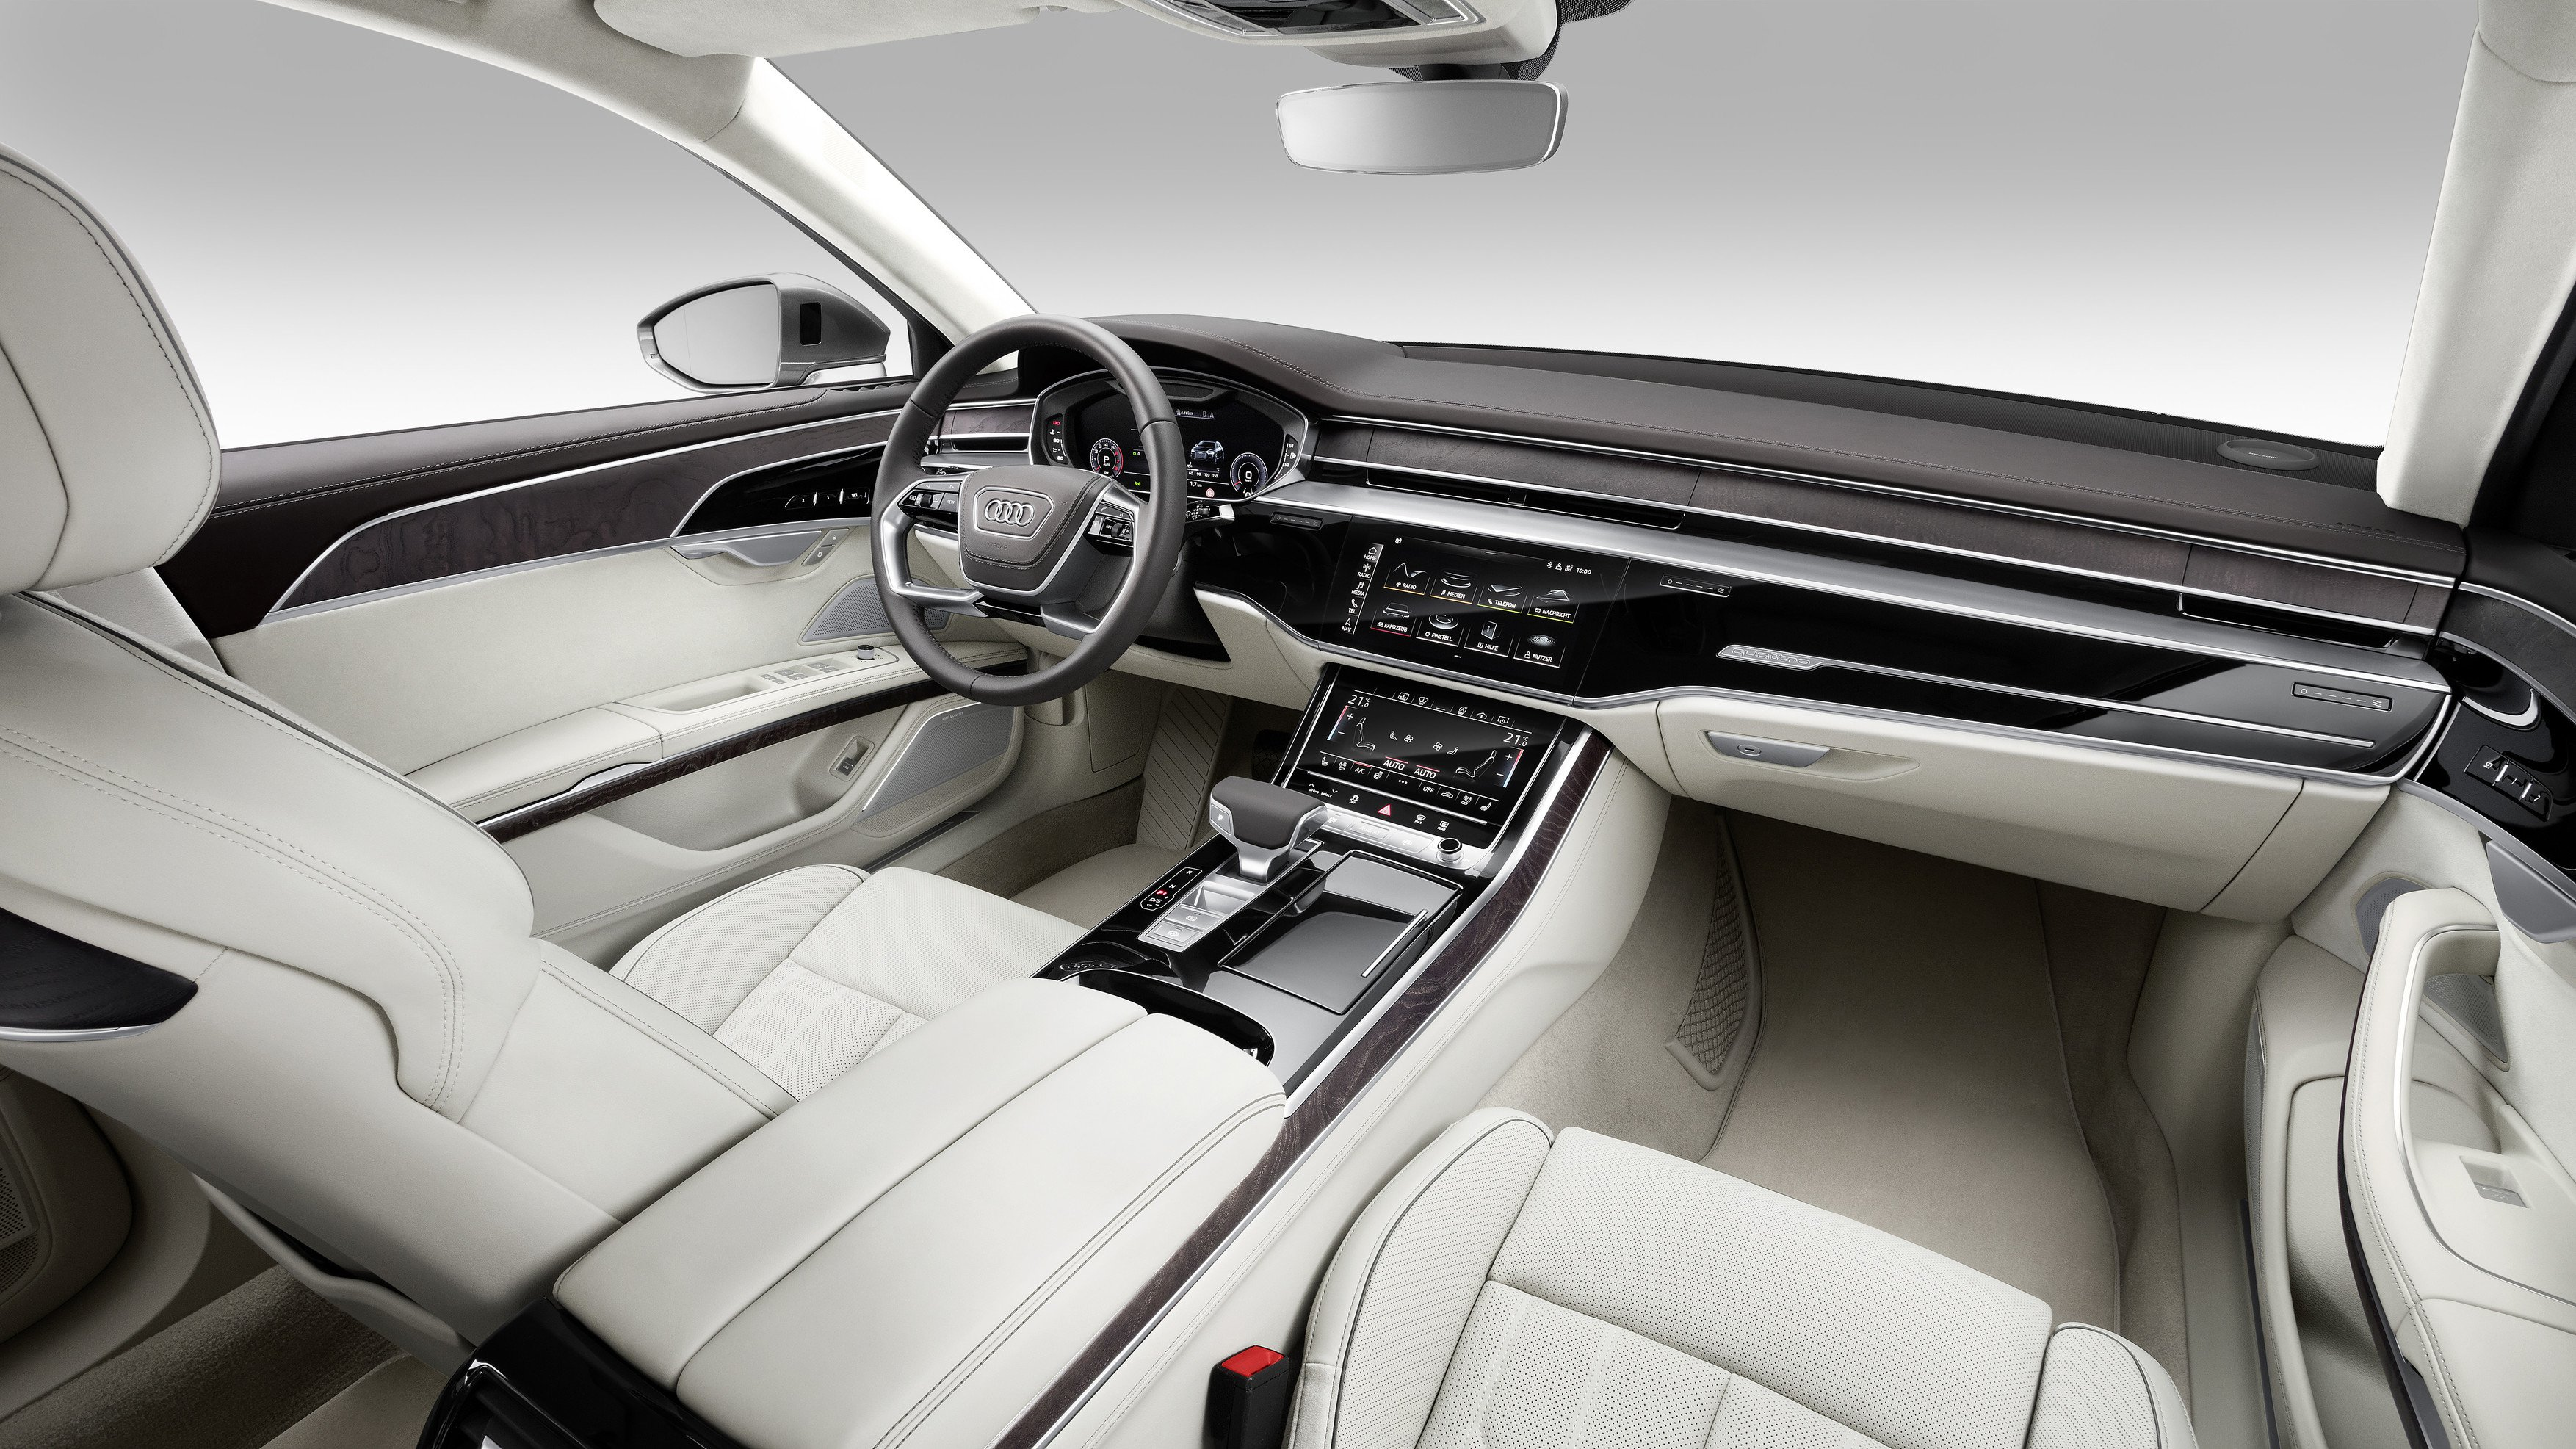 Is The New Audi A8 The Most Technologically Advanced Car Yet? A178312 medium